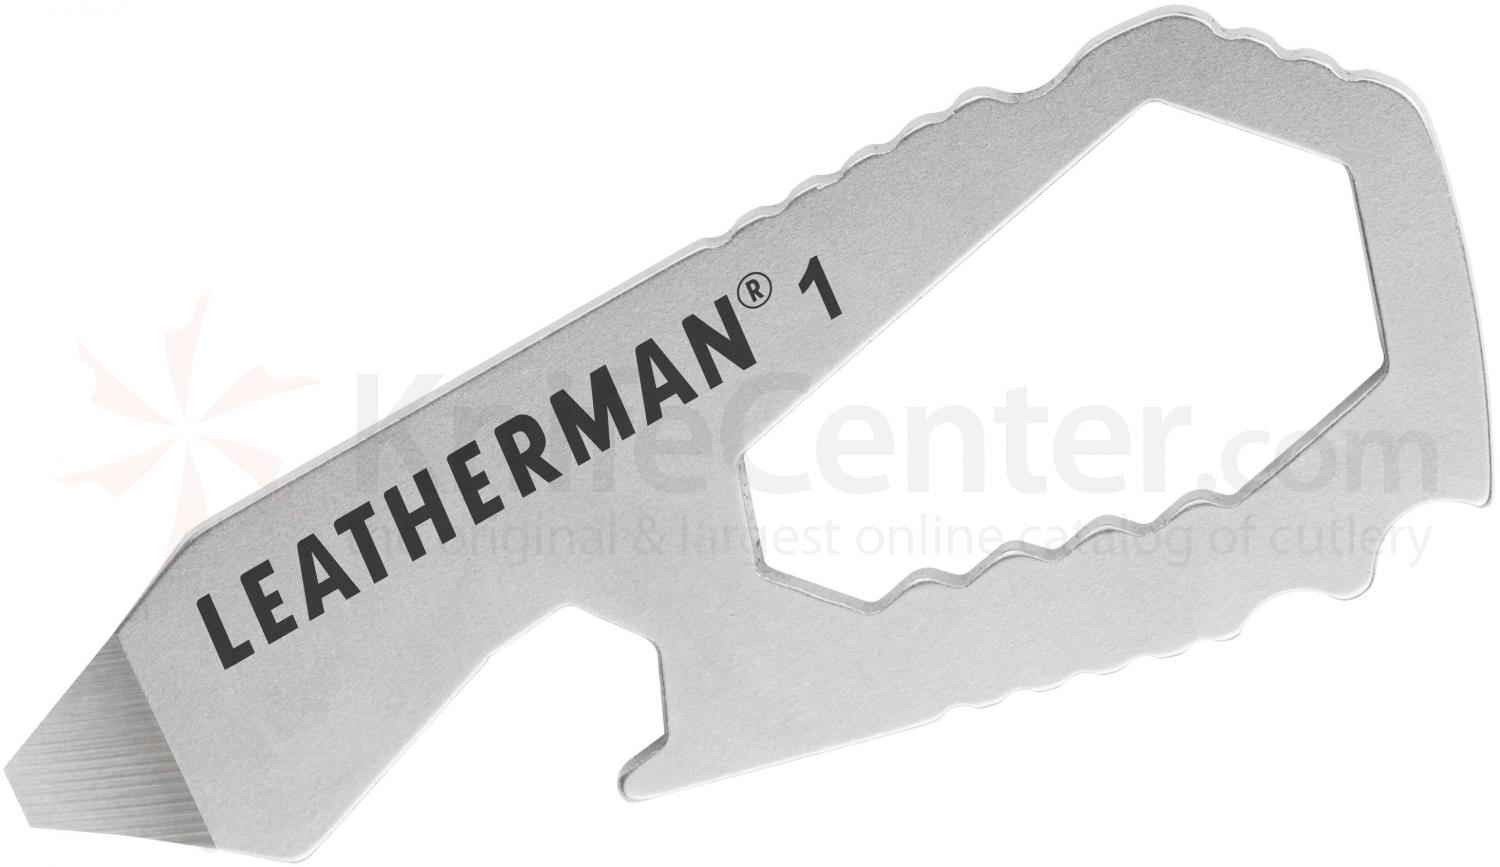 Leatherman Number 1 Keychain Size Mini Multi-Tool FREE Promotional Item with LM830948 Skeletool Purchase